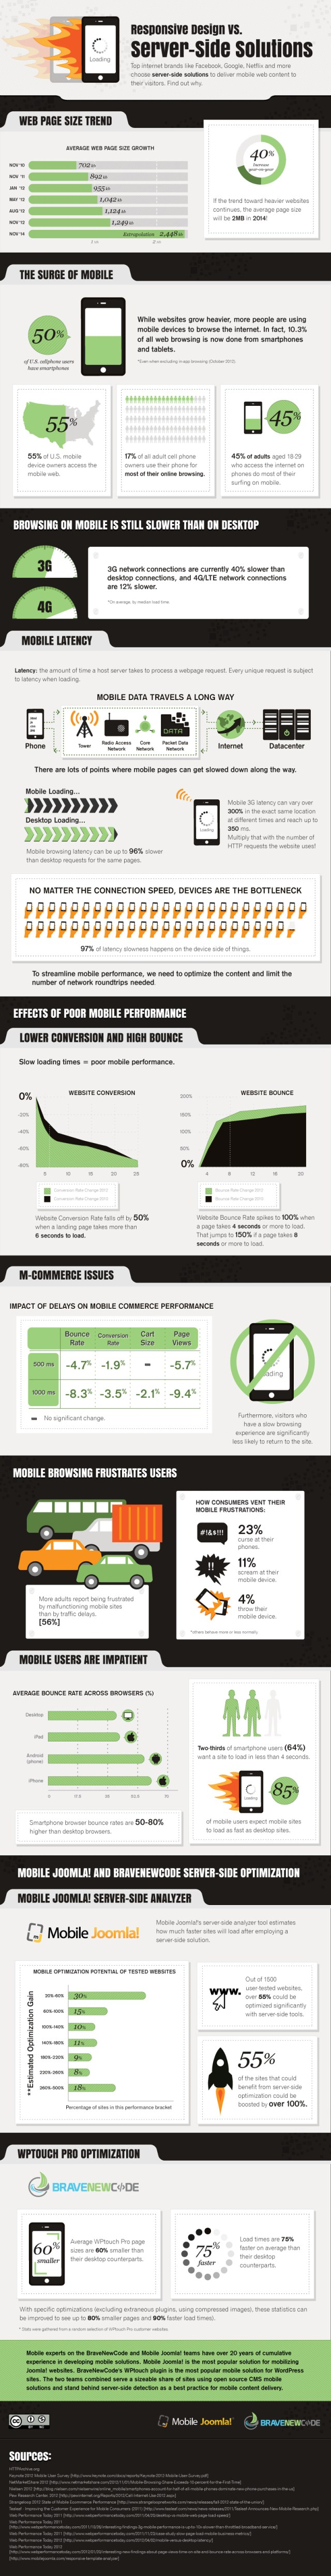 Responsive-Design-vs-Server-Side-Solutions-Infographic